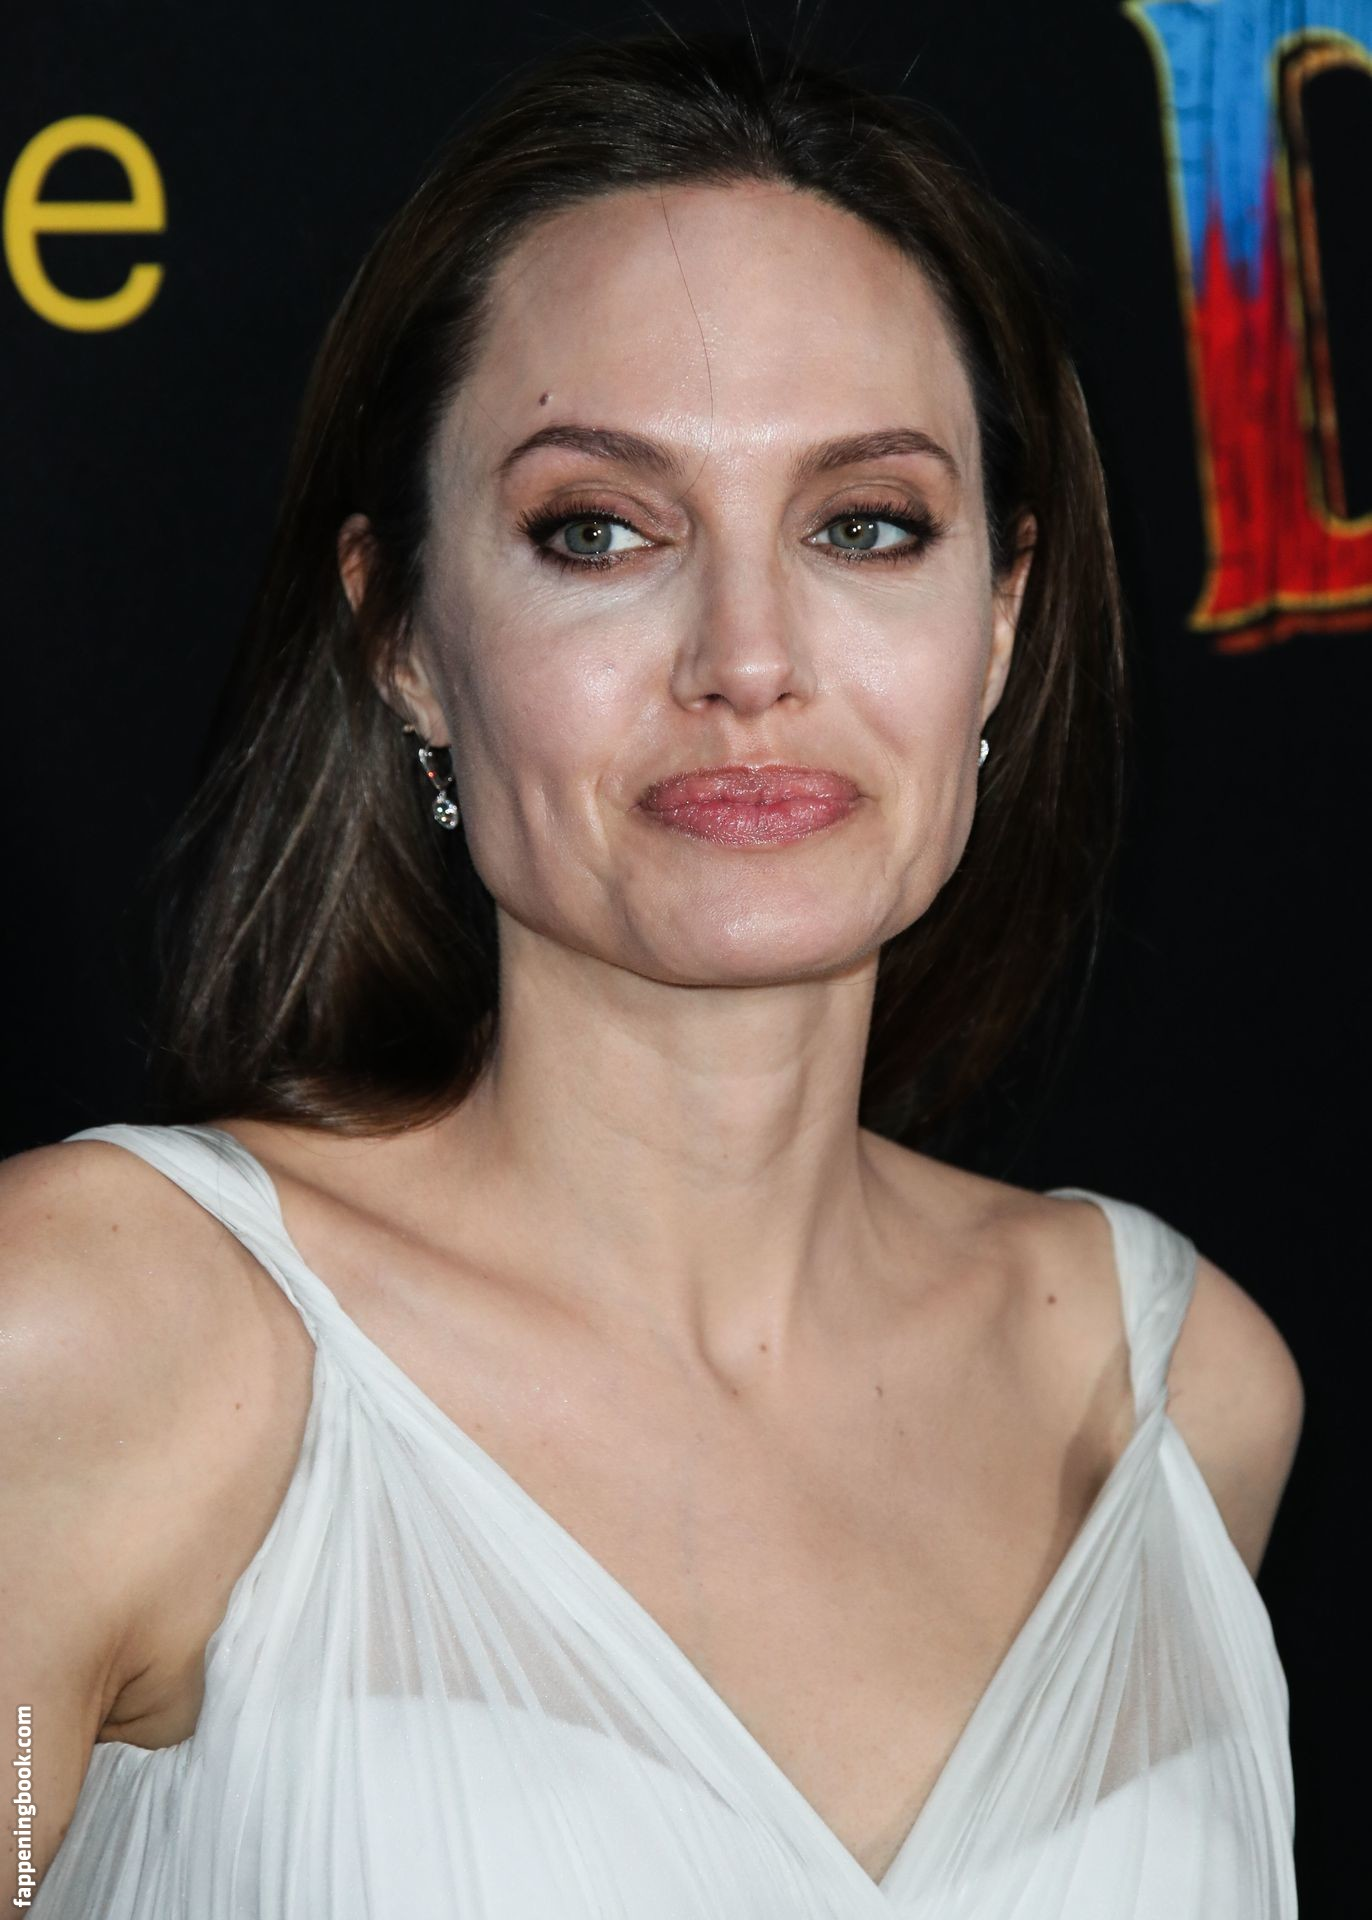 Angelina Jolie Nude Naked angelina jolie nude, sexy, the fappening, uncensored - photo